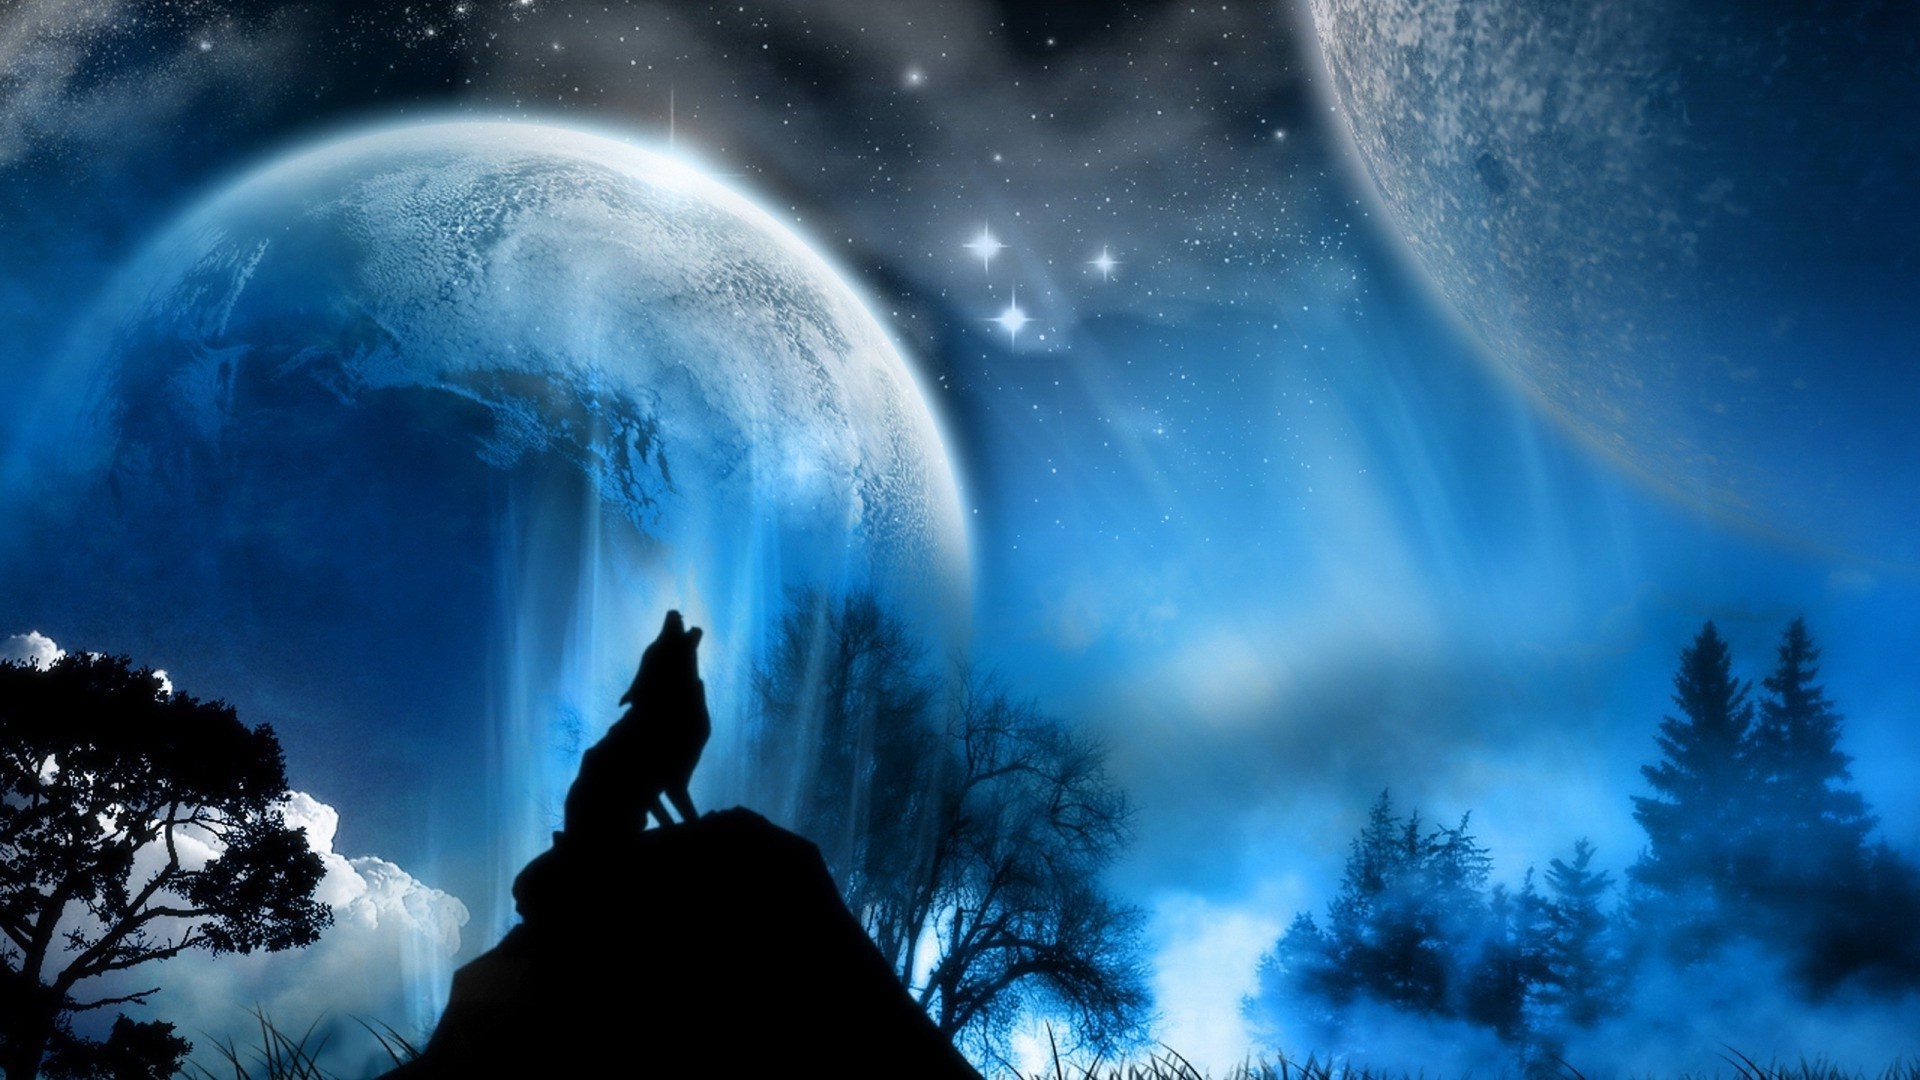 Wolf howling at the moon wallpaper 66 images - Wolf howling hd ...